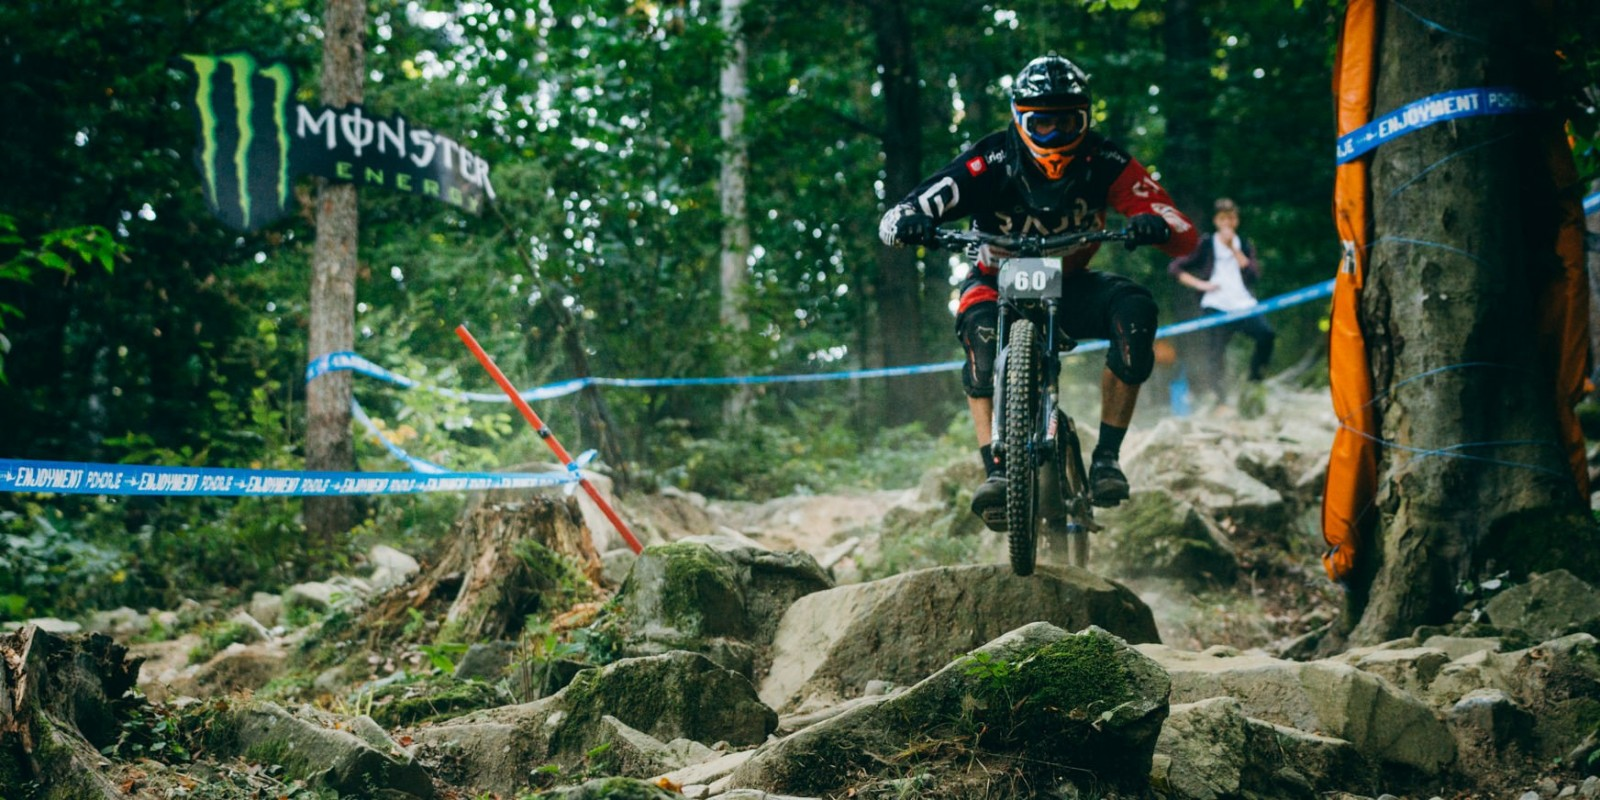 The last race of slovenian DH cup was held on 1.10. in Maribor.